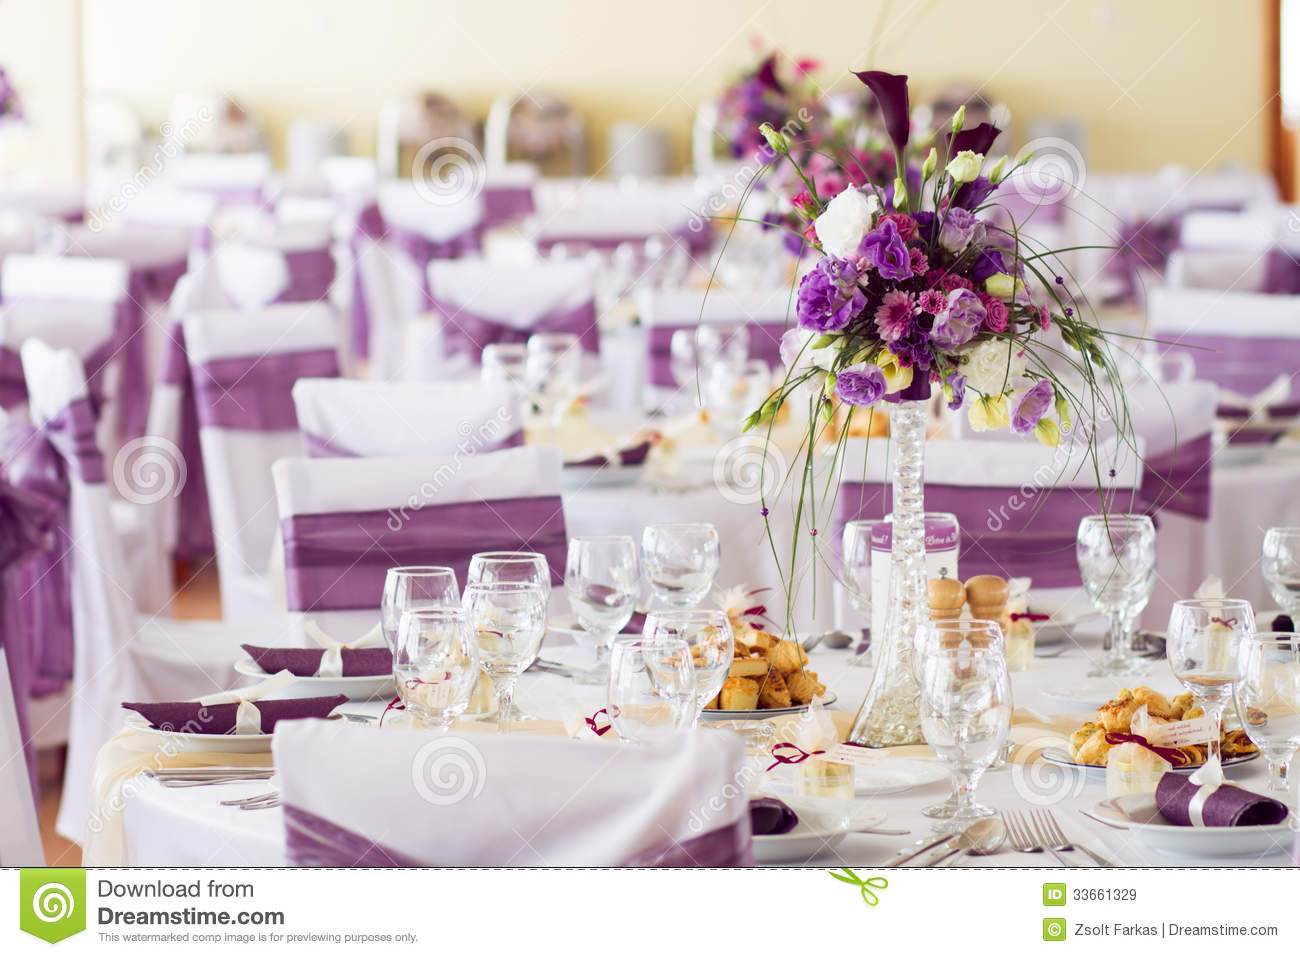 Wedding Table Decoration With Flowers Royalty Free Stock Images Image 33661329